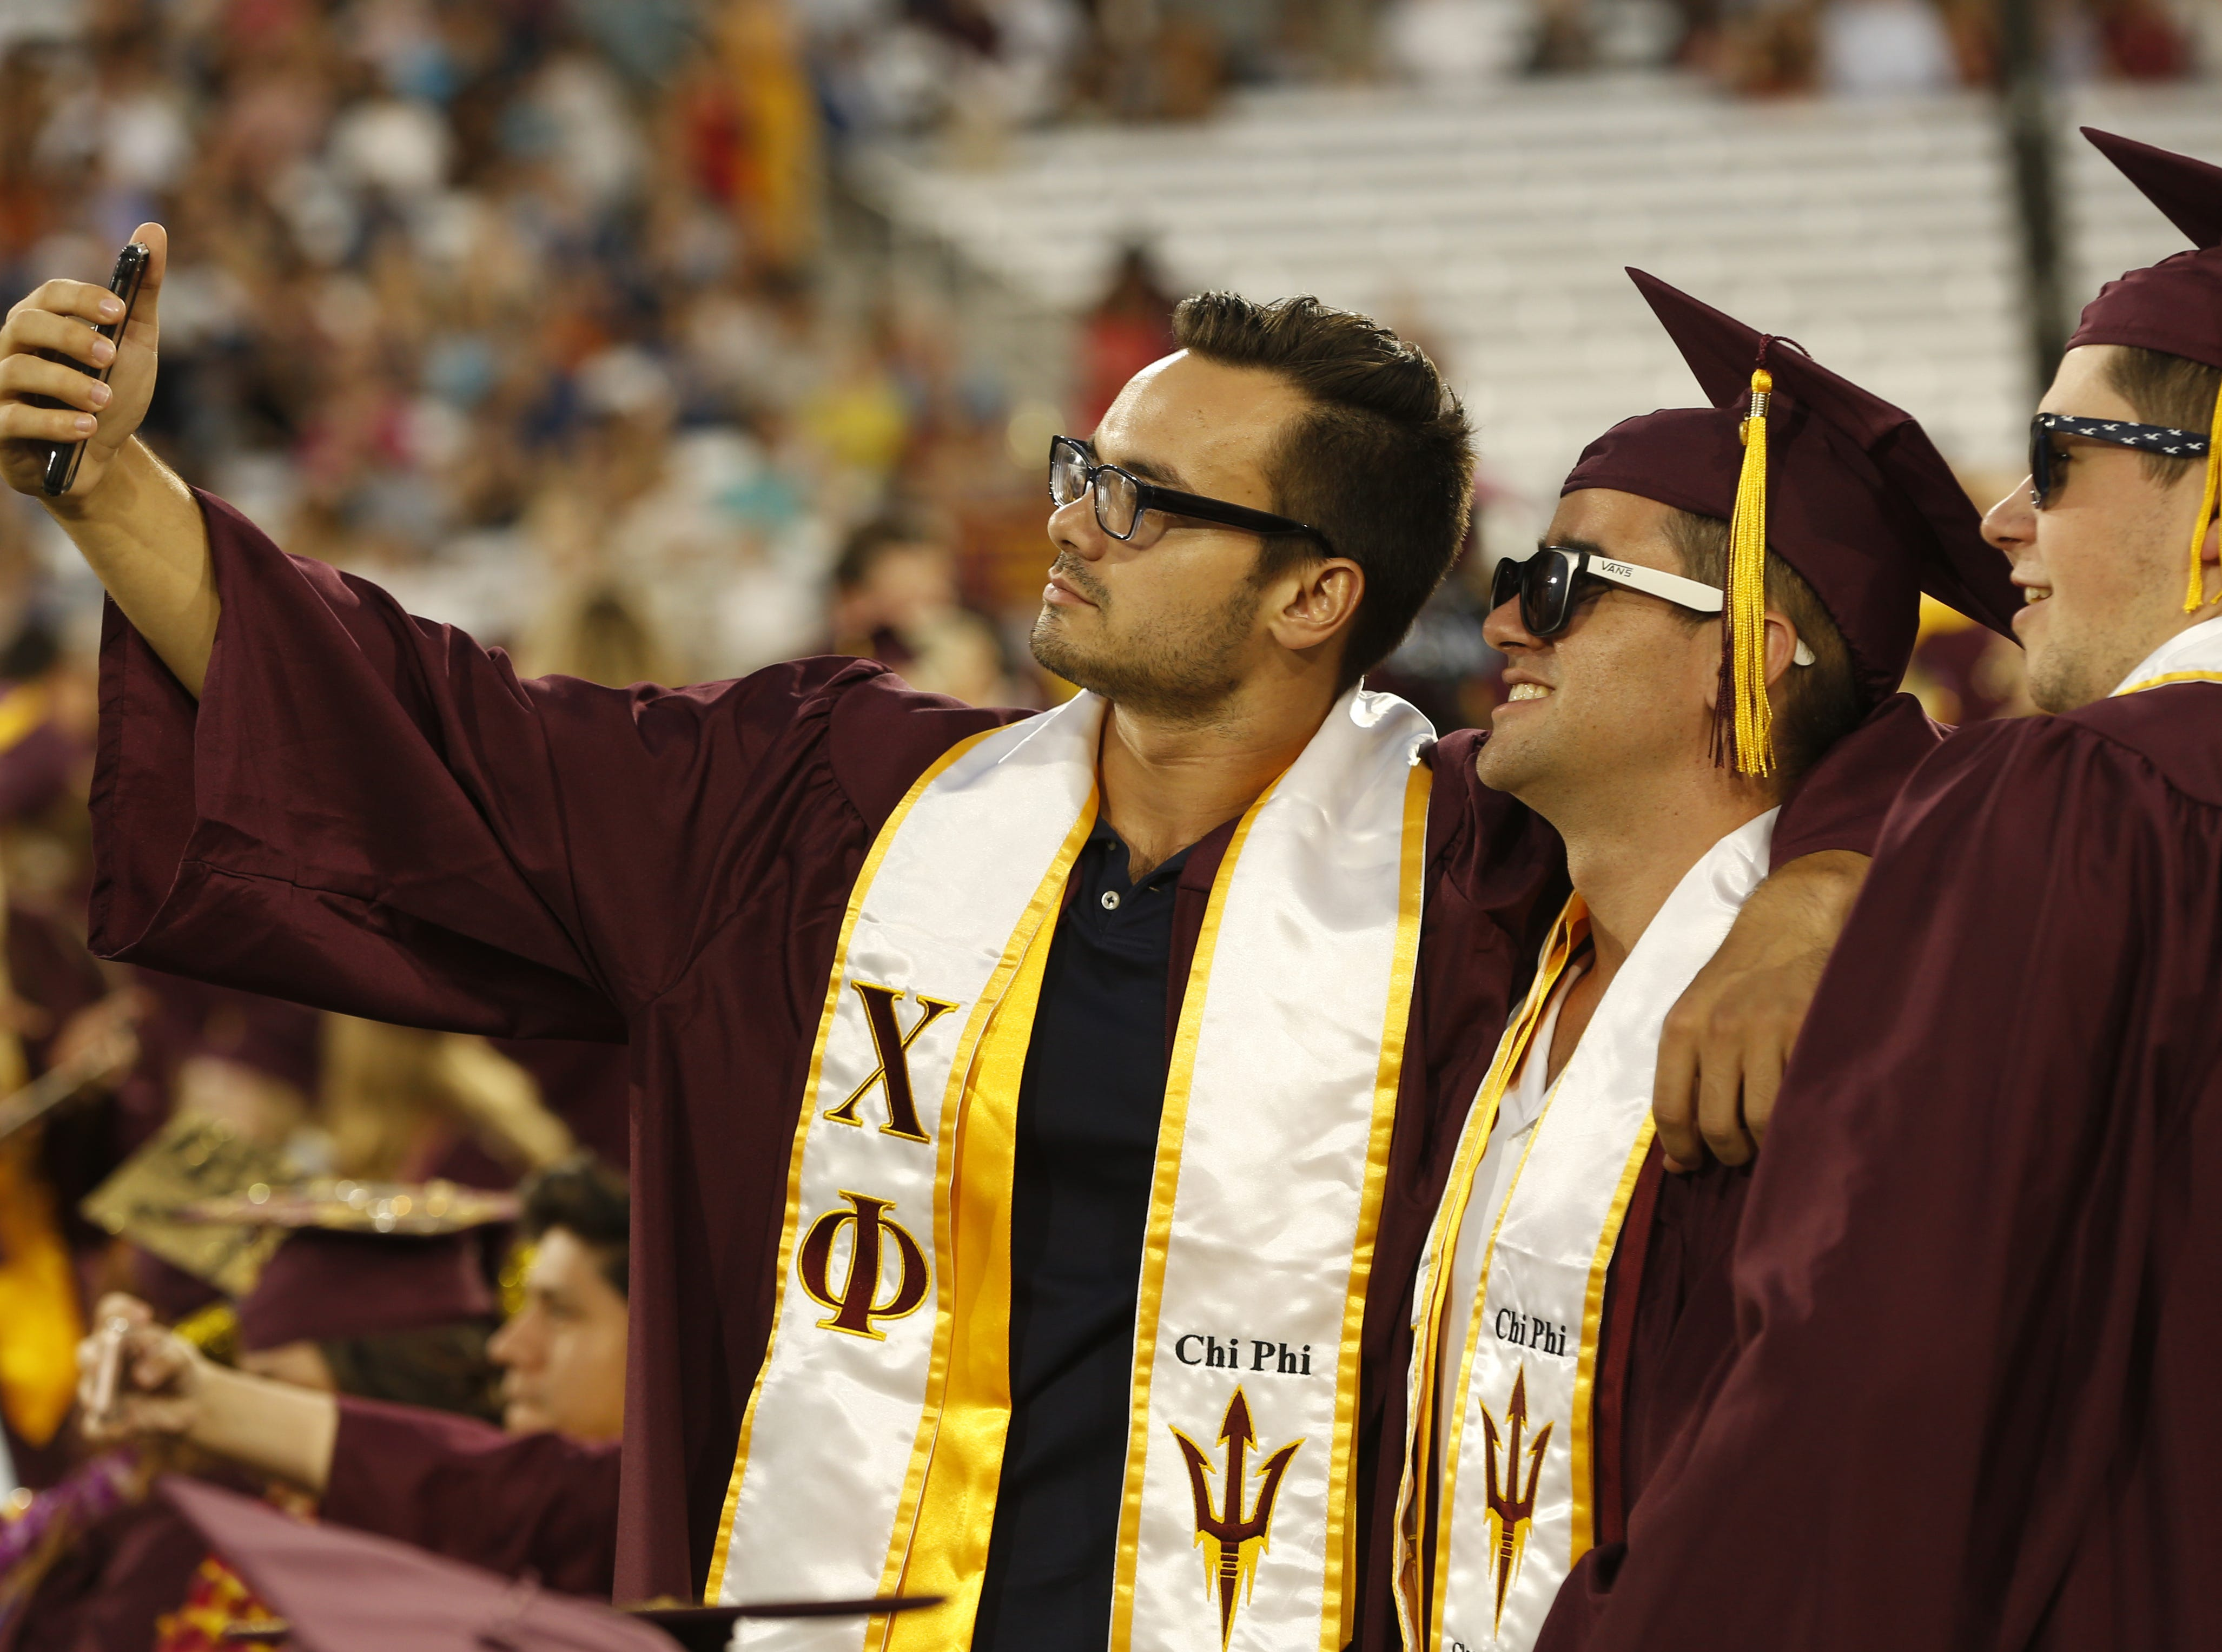 ASU graduates pose for selfies before ASU's Undergraduate Commencement at Sun Devil Stadium in Tempe, Ariz. on May 6, 2019.